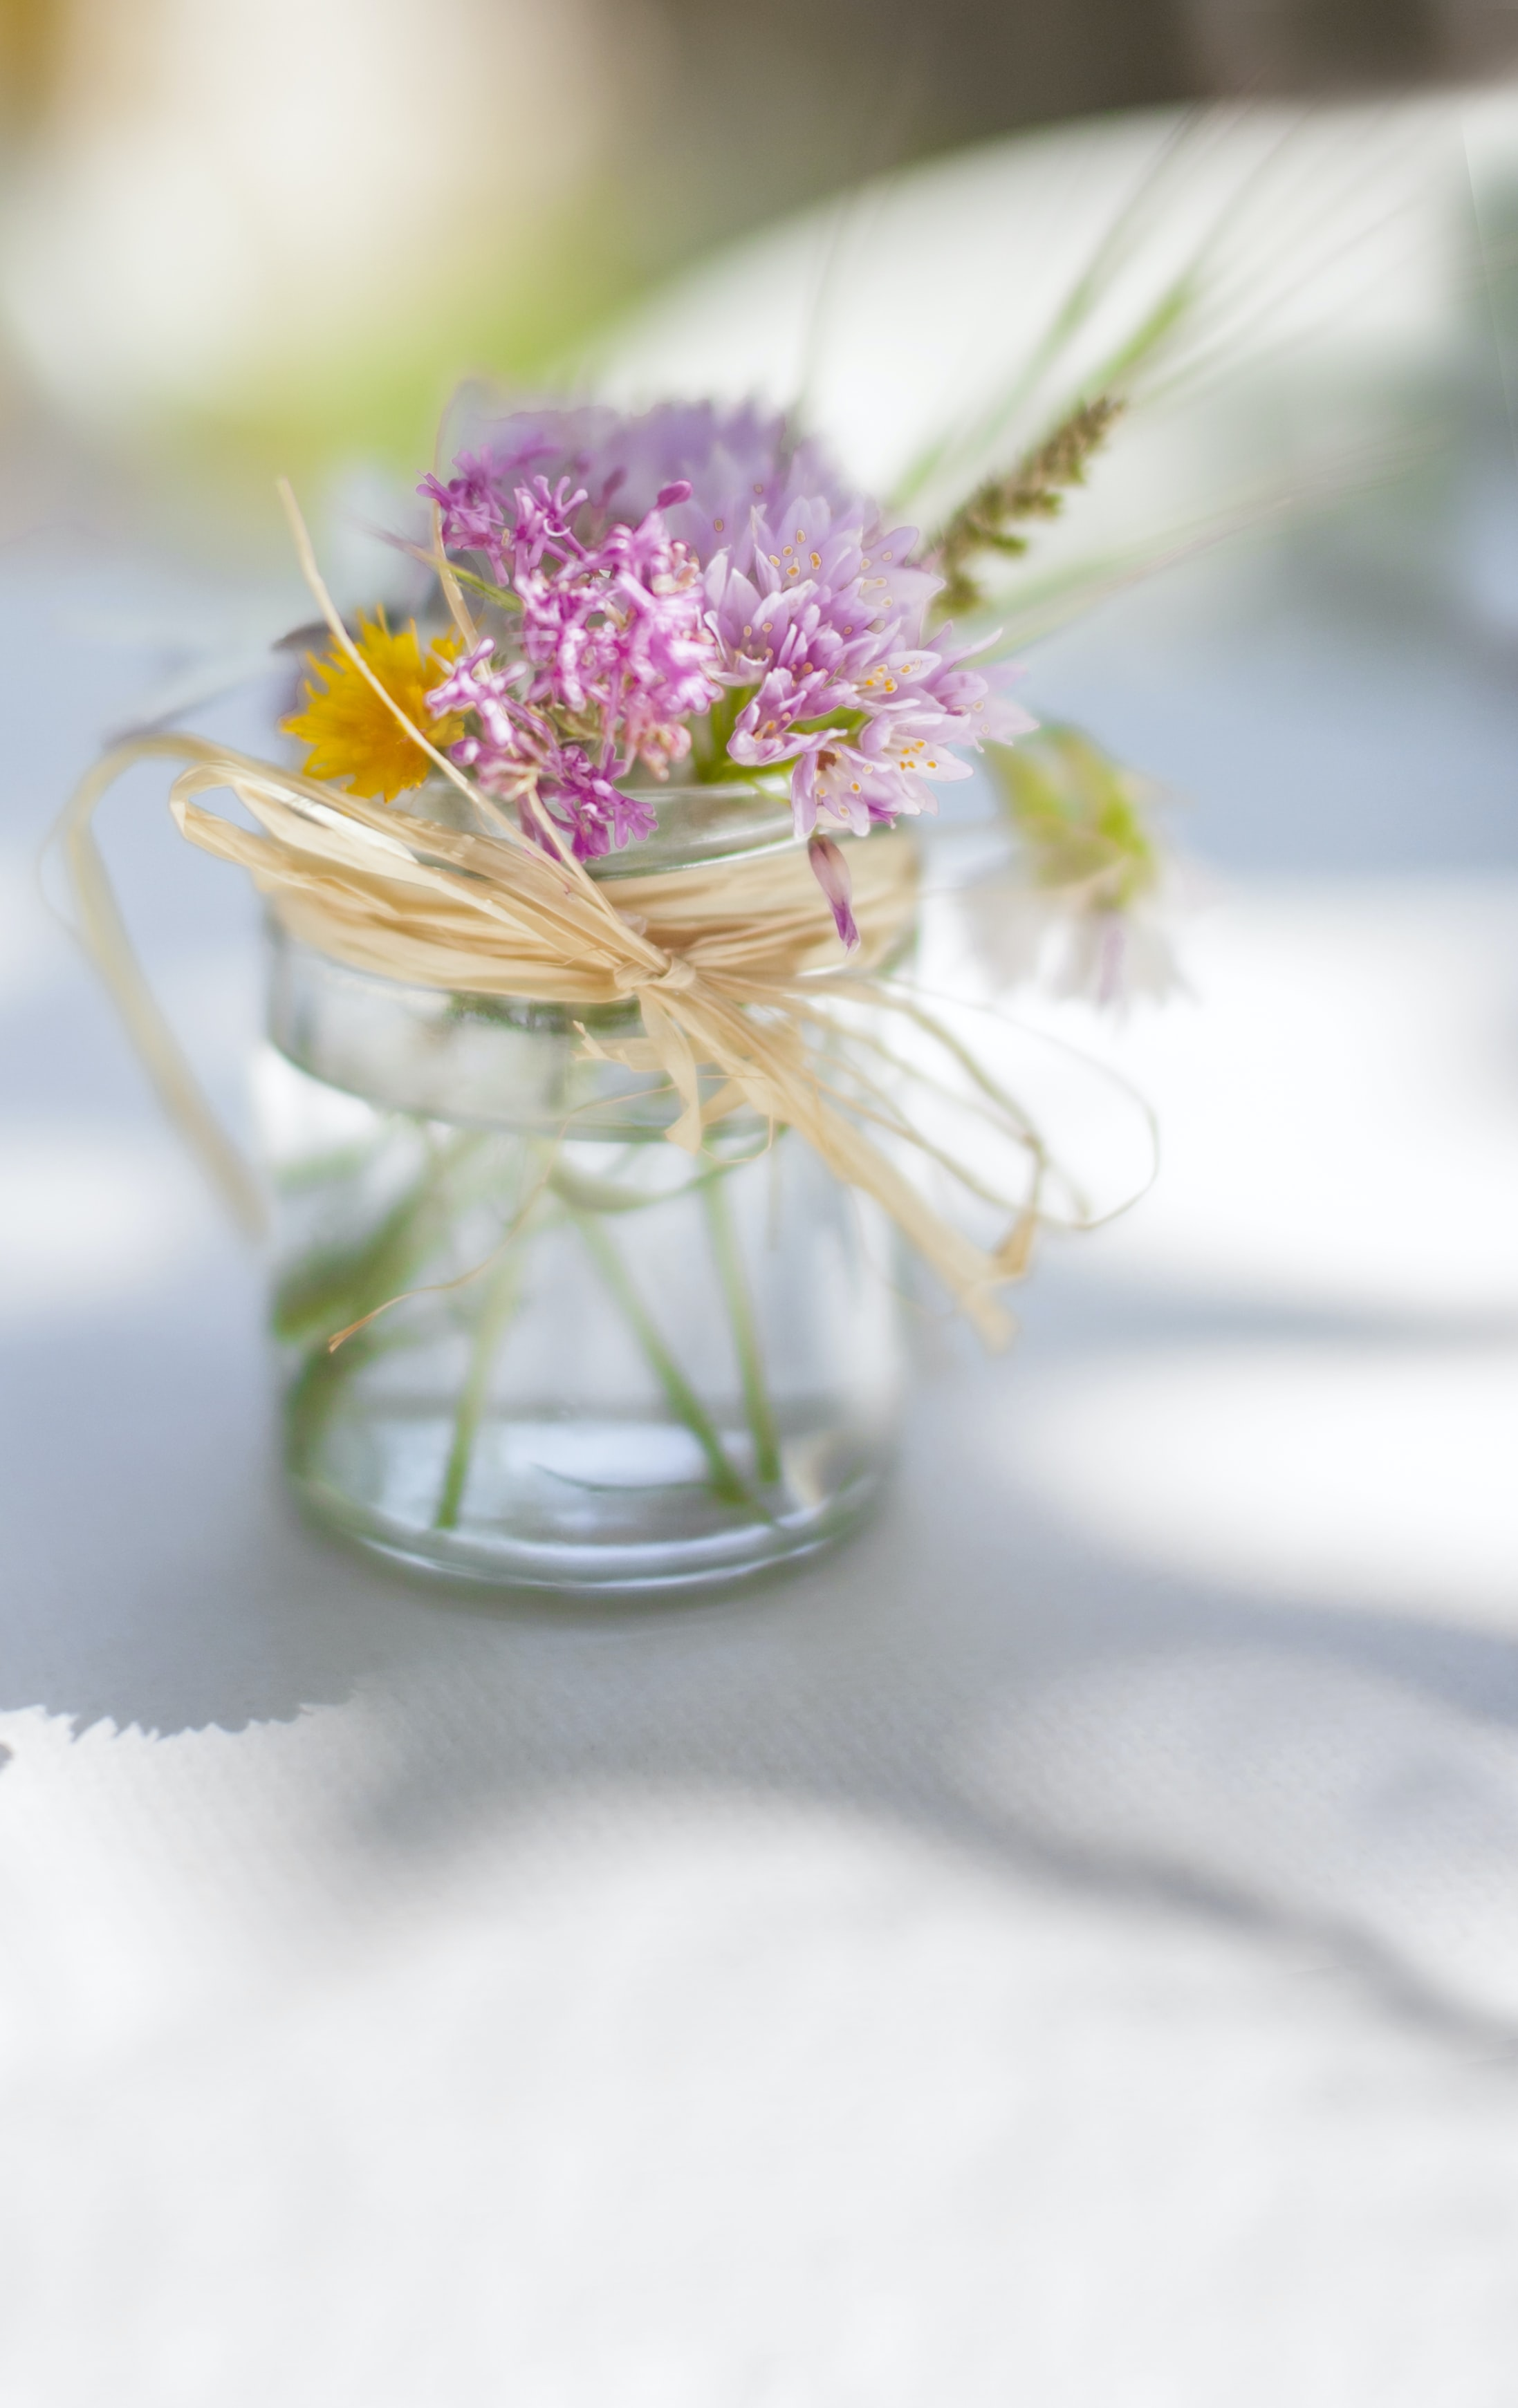 Pink flower in glass jar tied with twine on white table in Spring